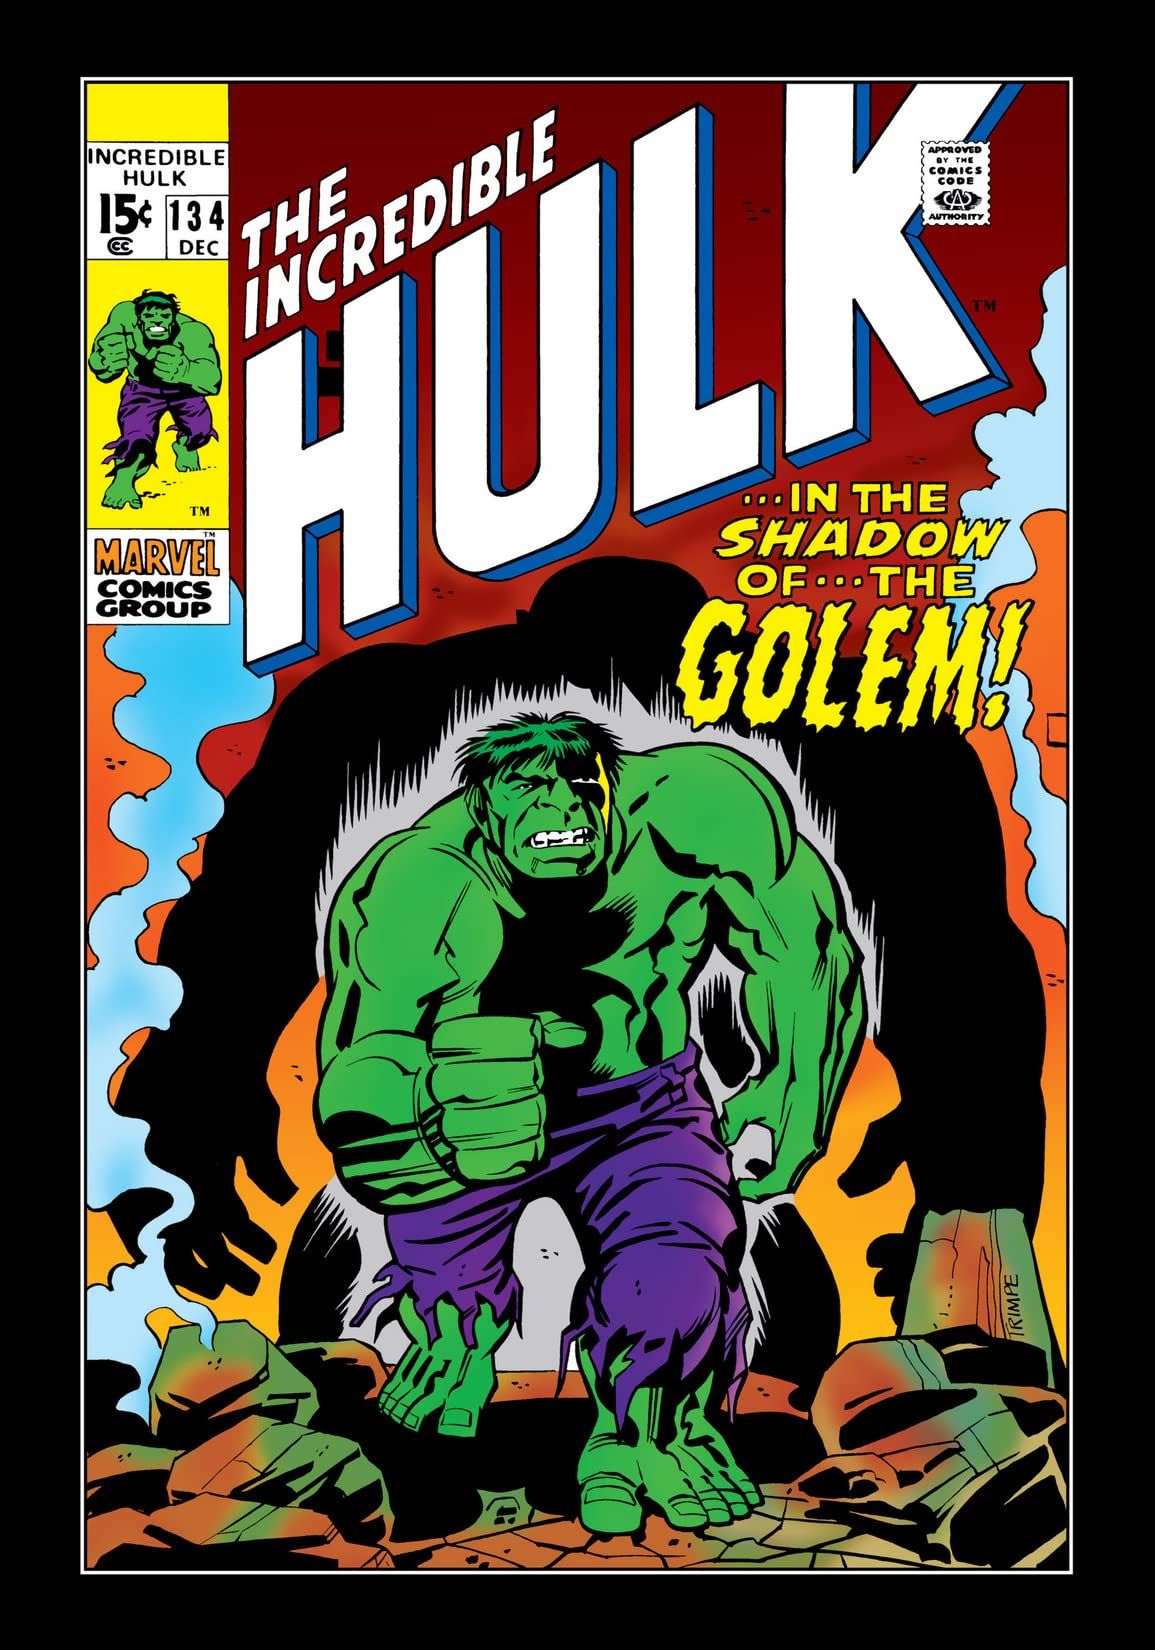 Incredible Hulk (1962-1999) #134